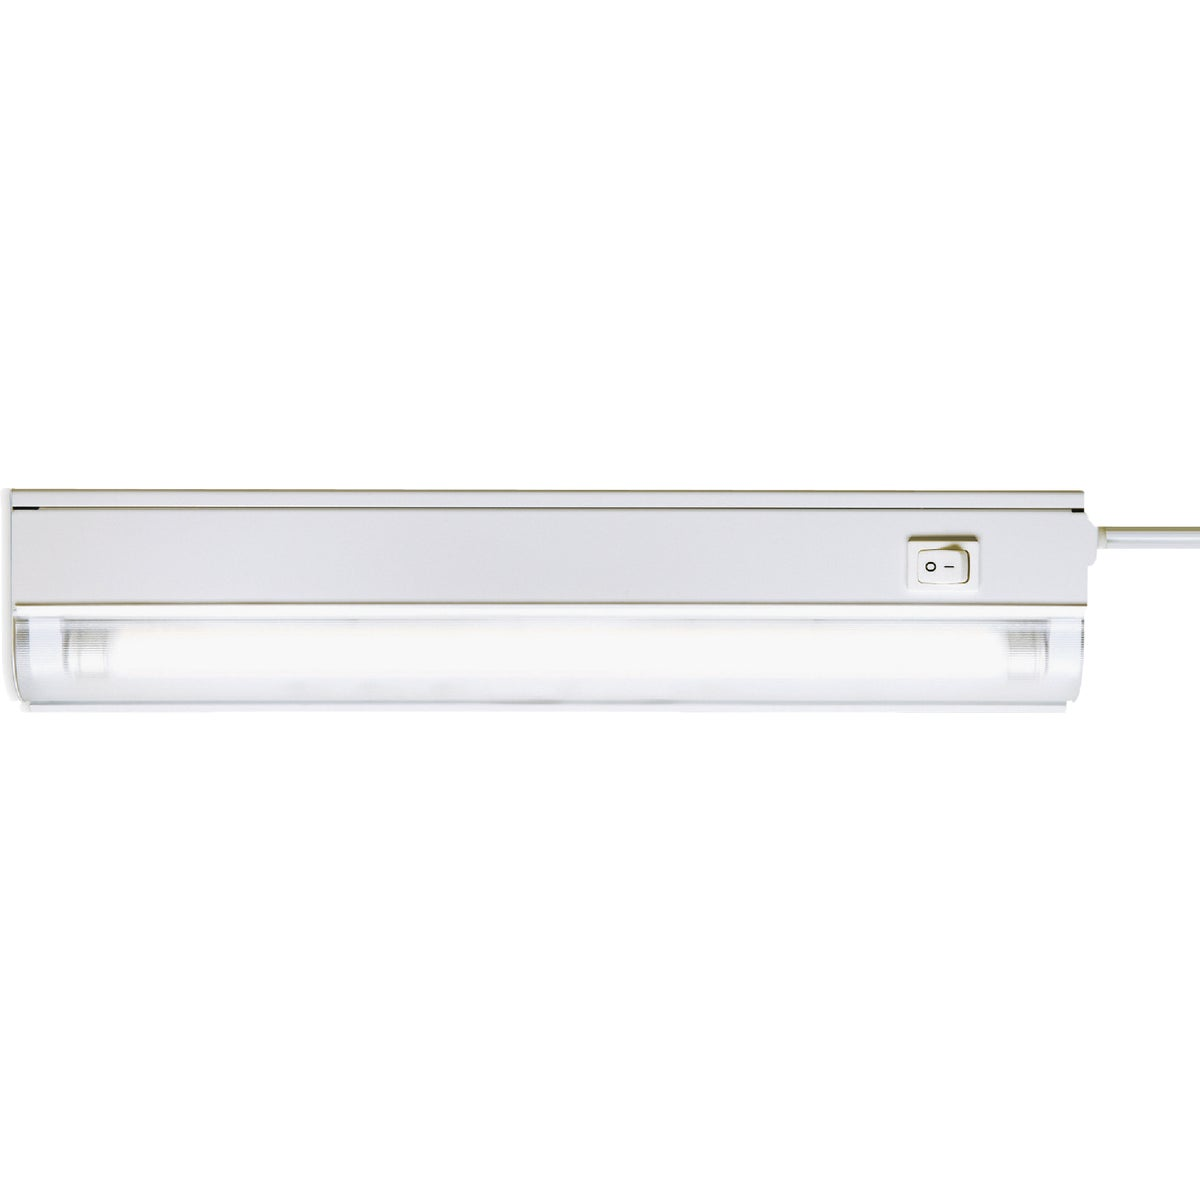 "12.5"" UNDERCABINET LIGHT - G9712P-T5-WHESI by Good Earth Lighting"